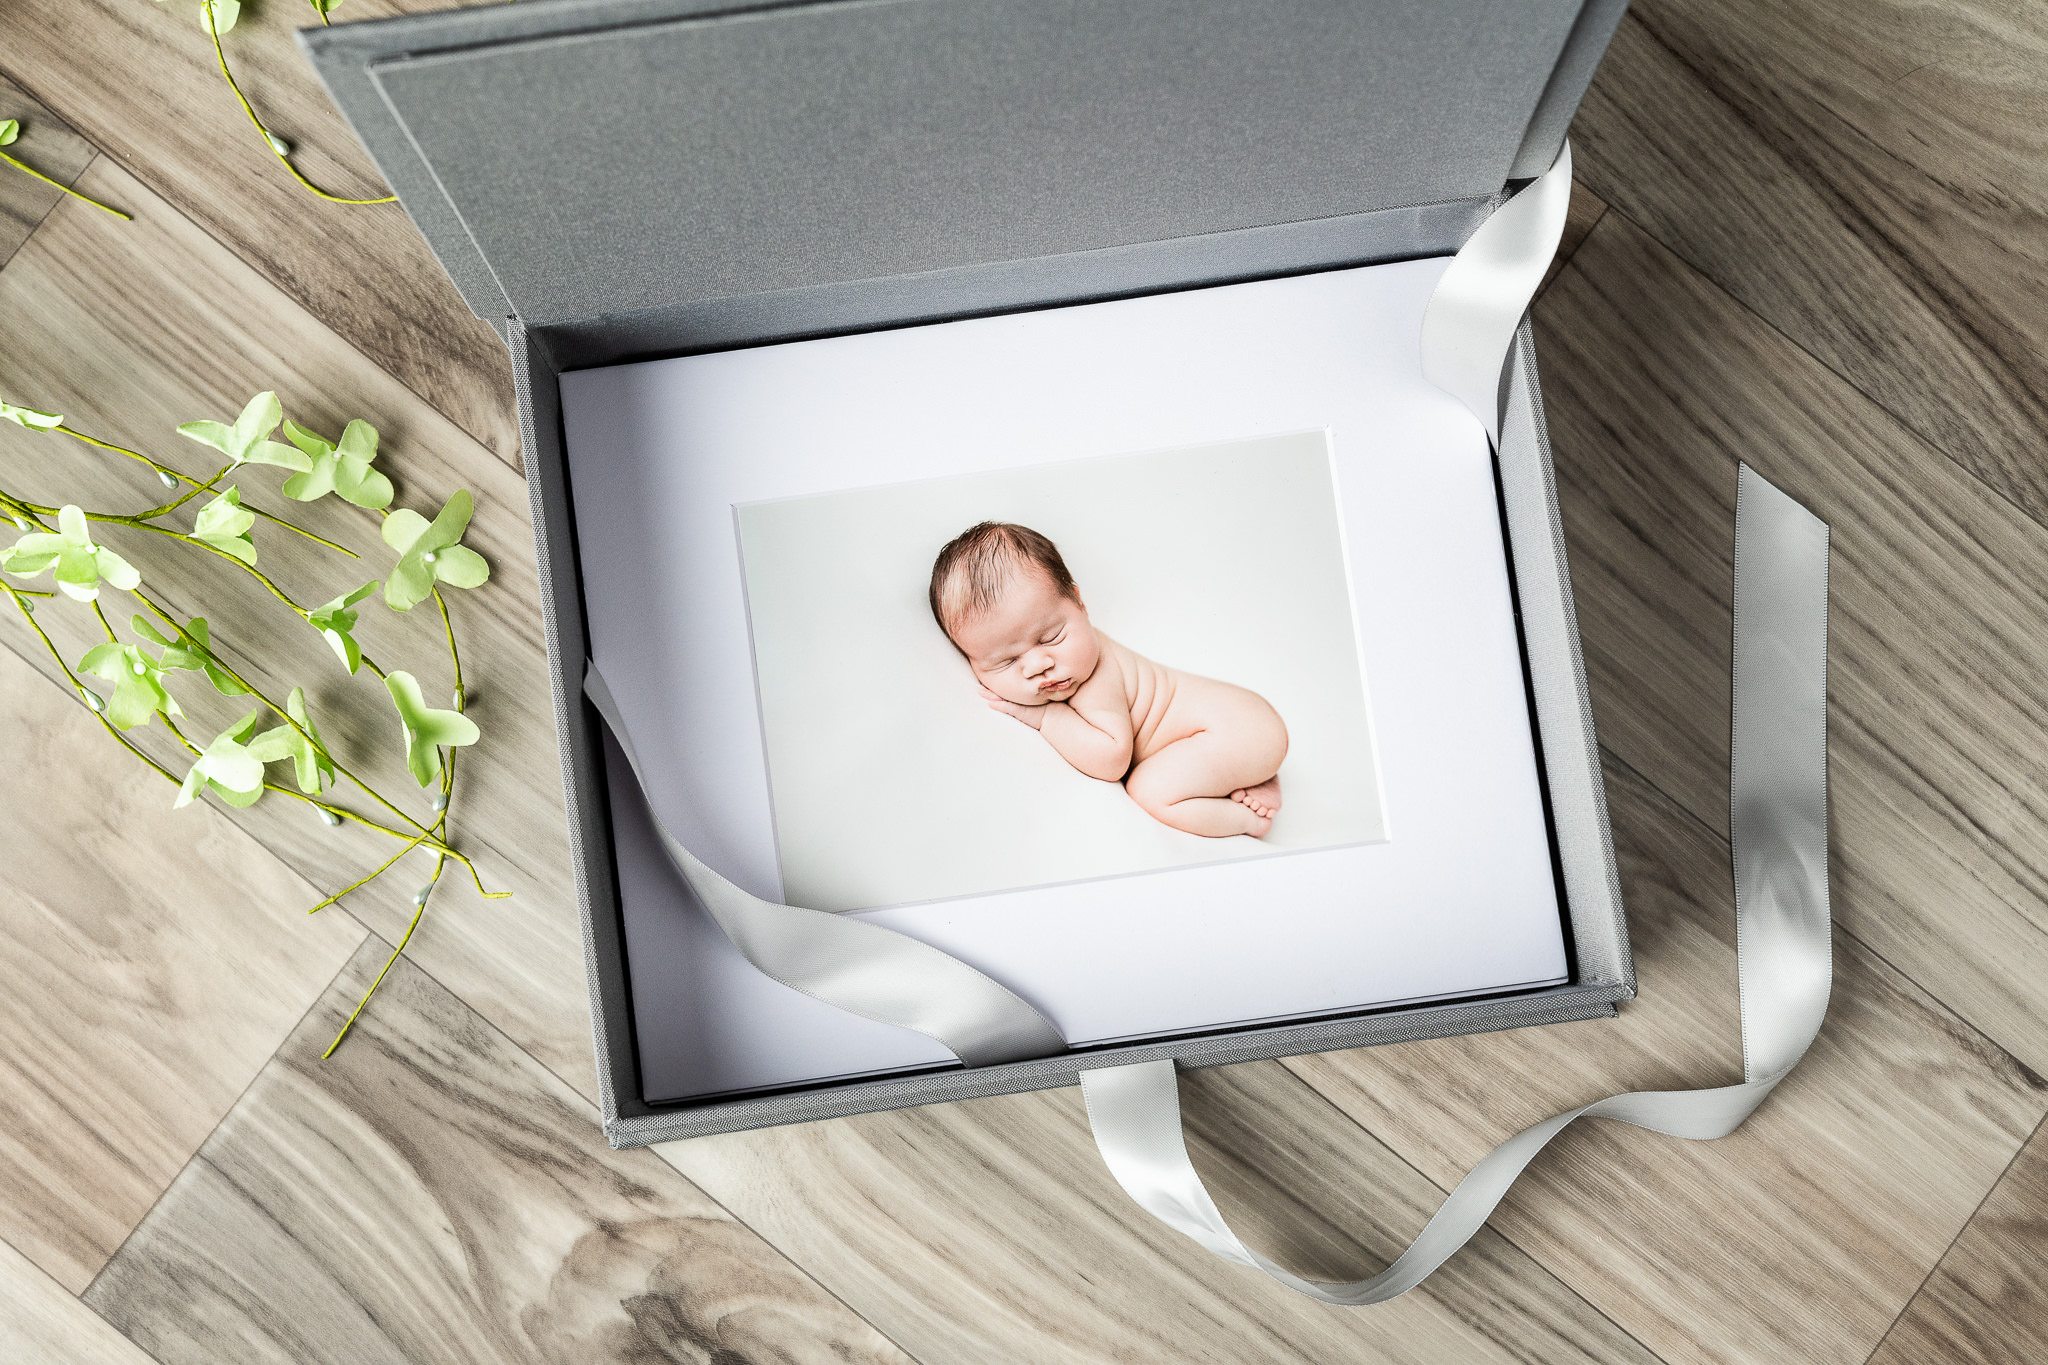 Heirloom Collection - A beautiful personalized heirloom box that holds gorgeous matted prints.Starting at $2,890